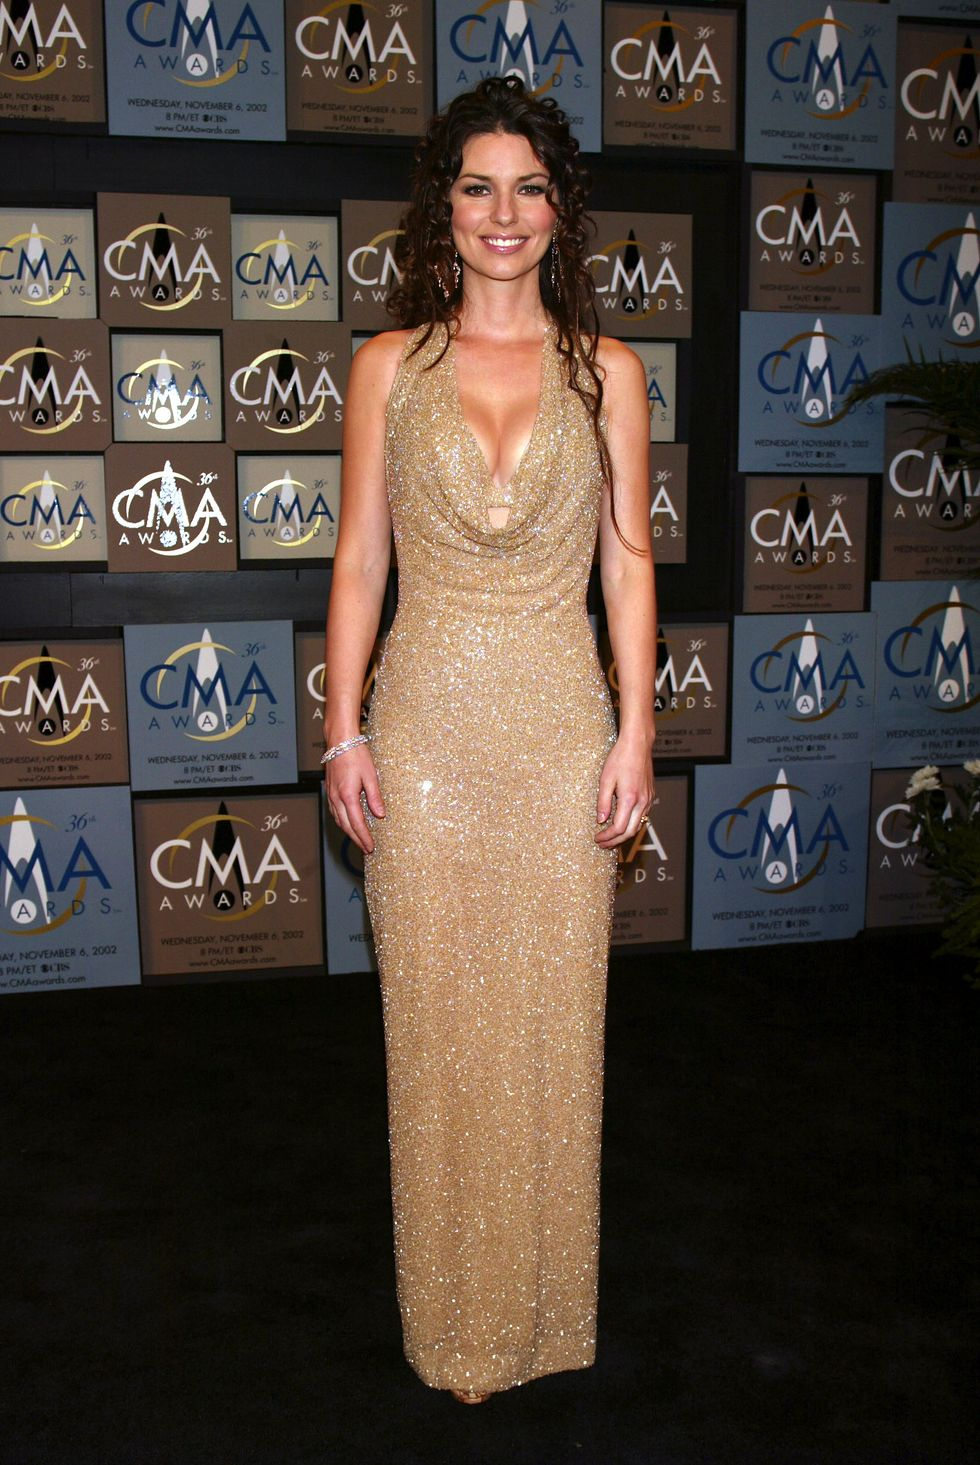 Shania Twain backstage at the 36th annual Country Music Association Awards at the Grand Ole Opry House in Nashville, Tennessee, November 6, 2002.  Photo by Scott Gries/Getty Images